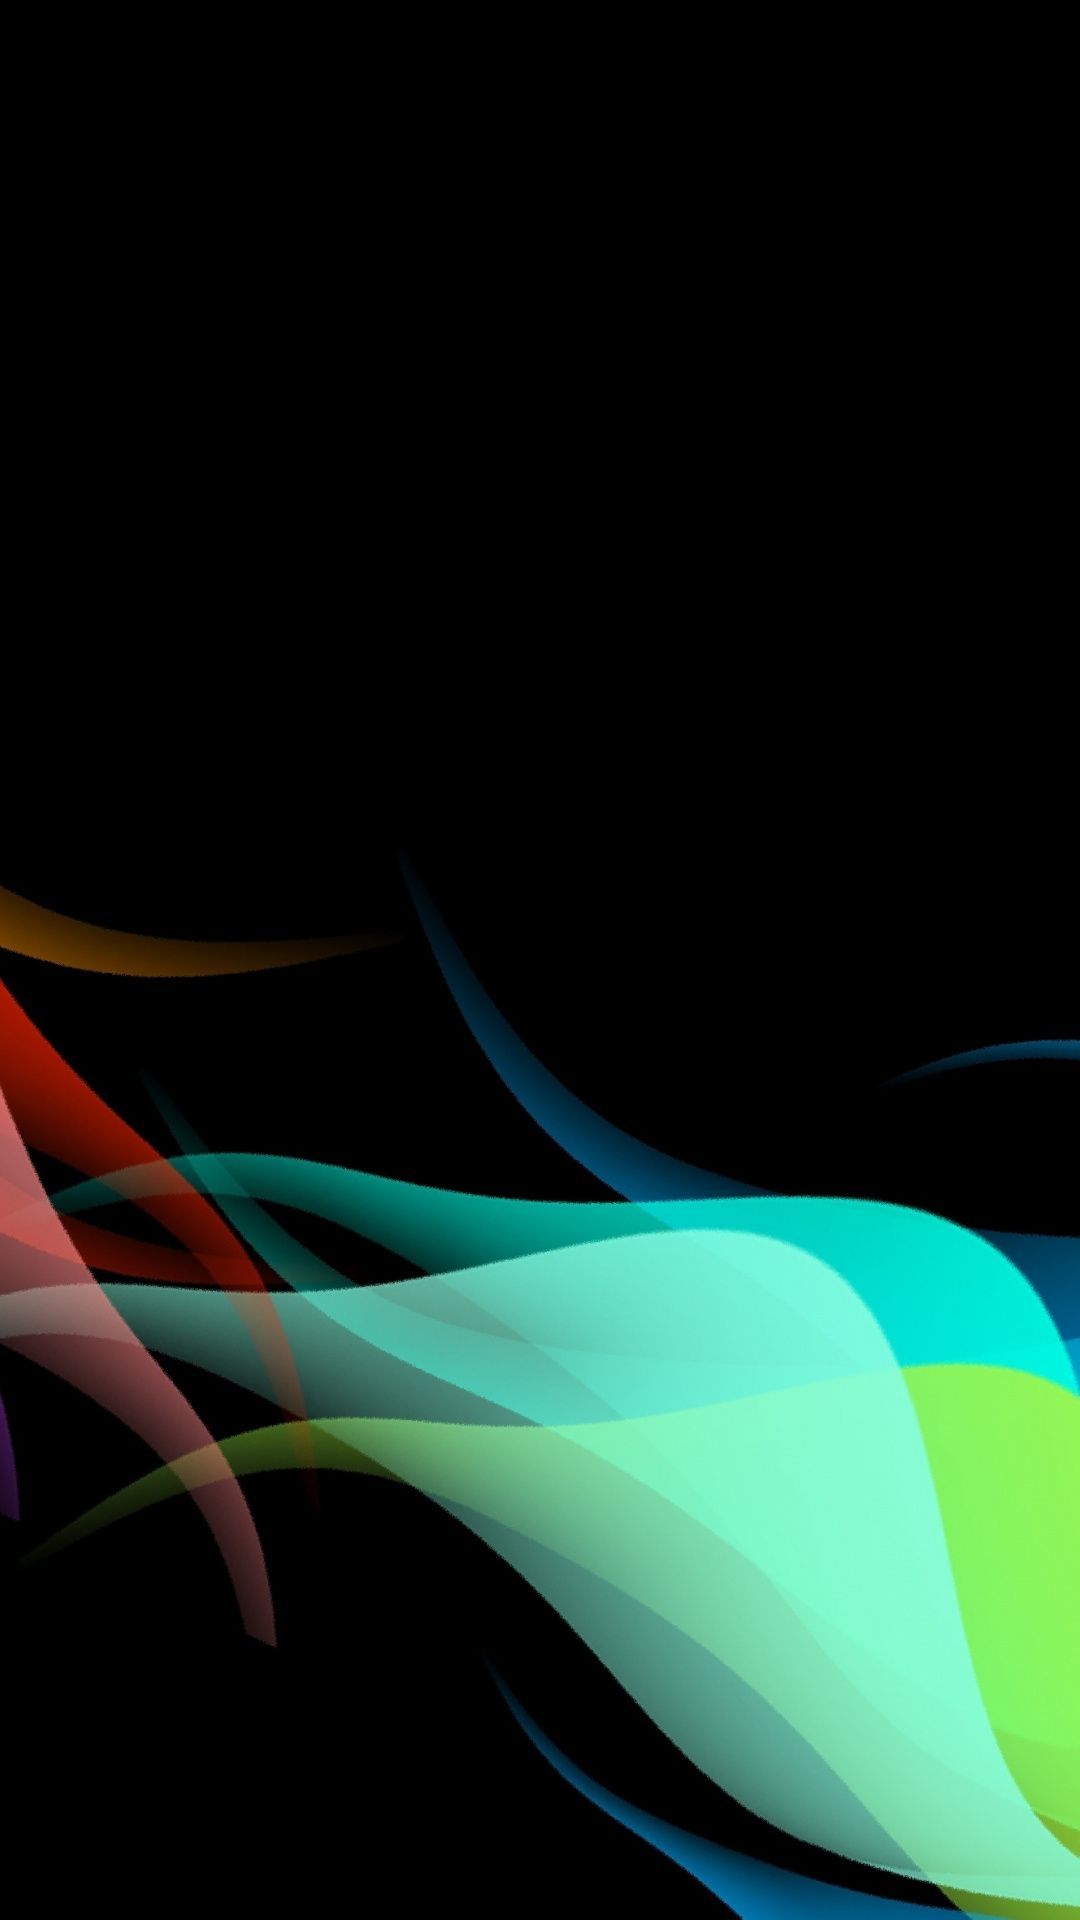 Abstract Waves Colorful Art 1080x1920 Wallpaper Abstract